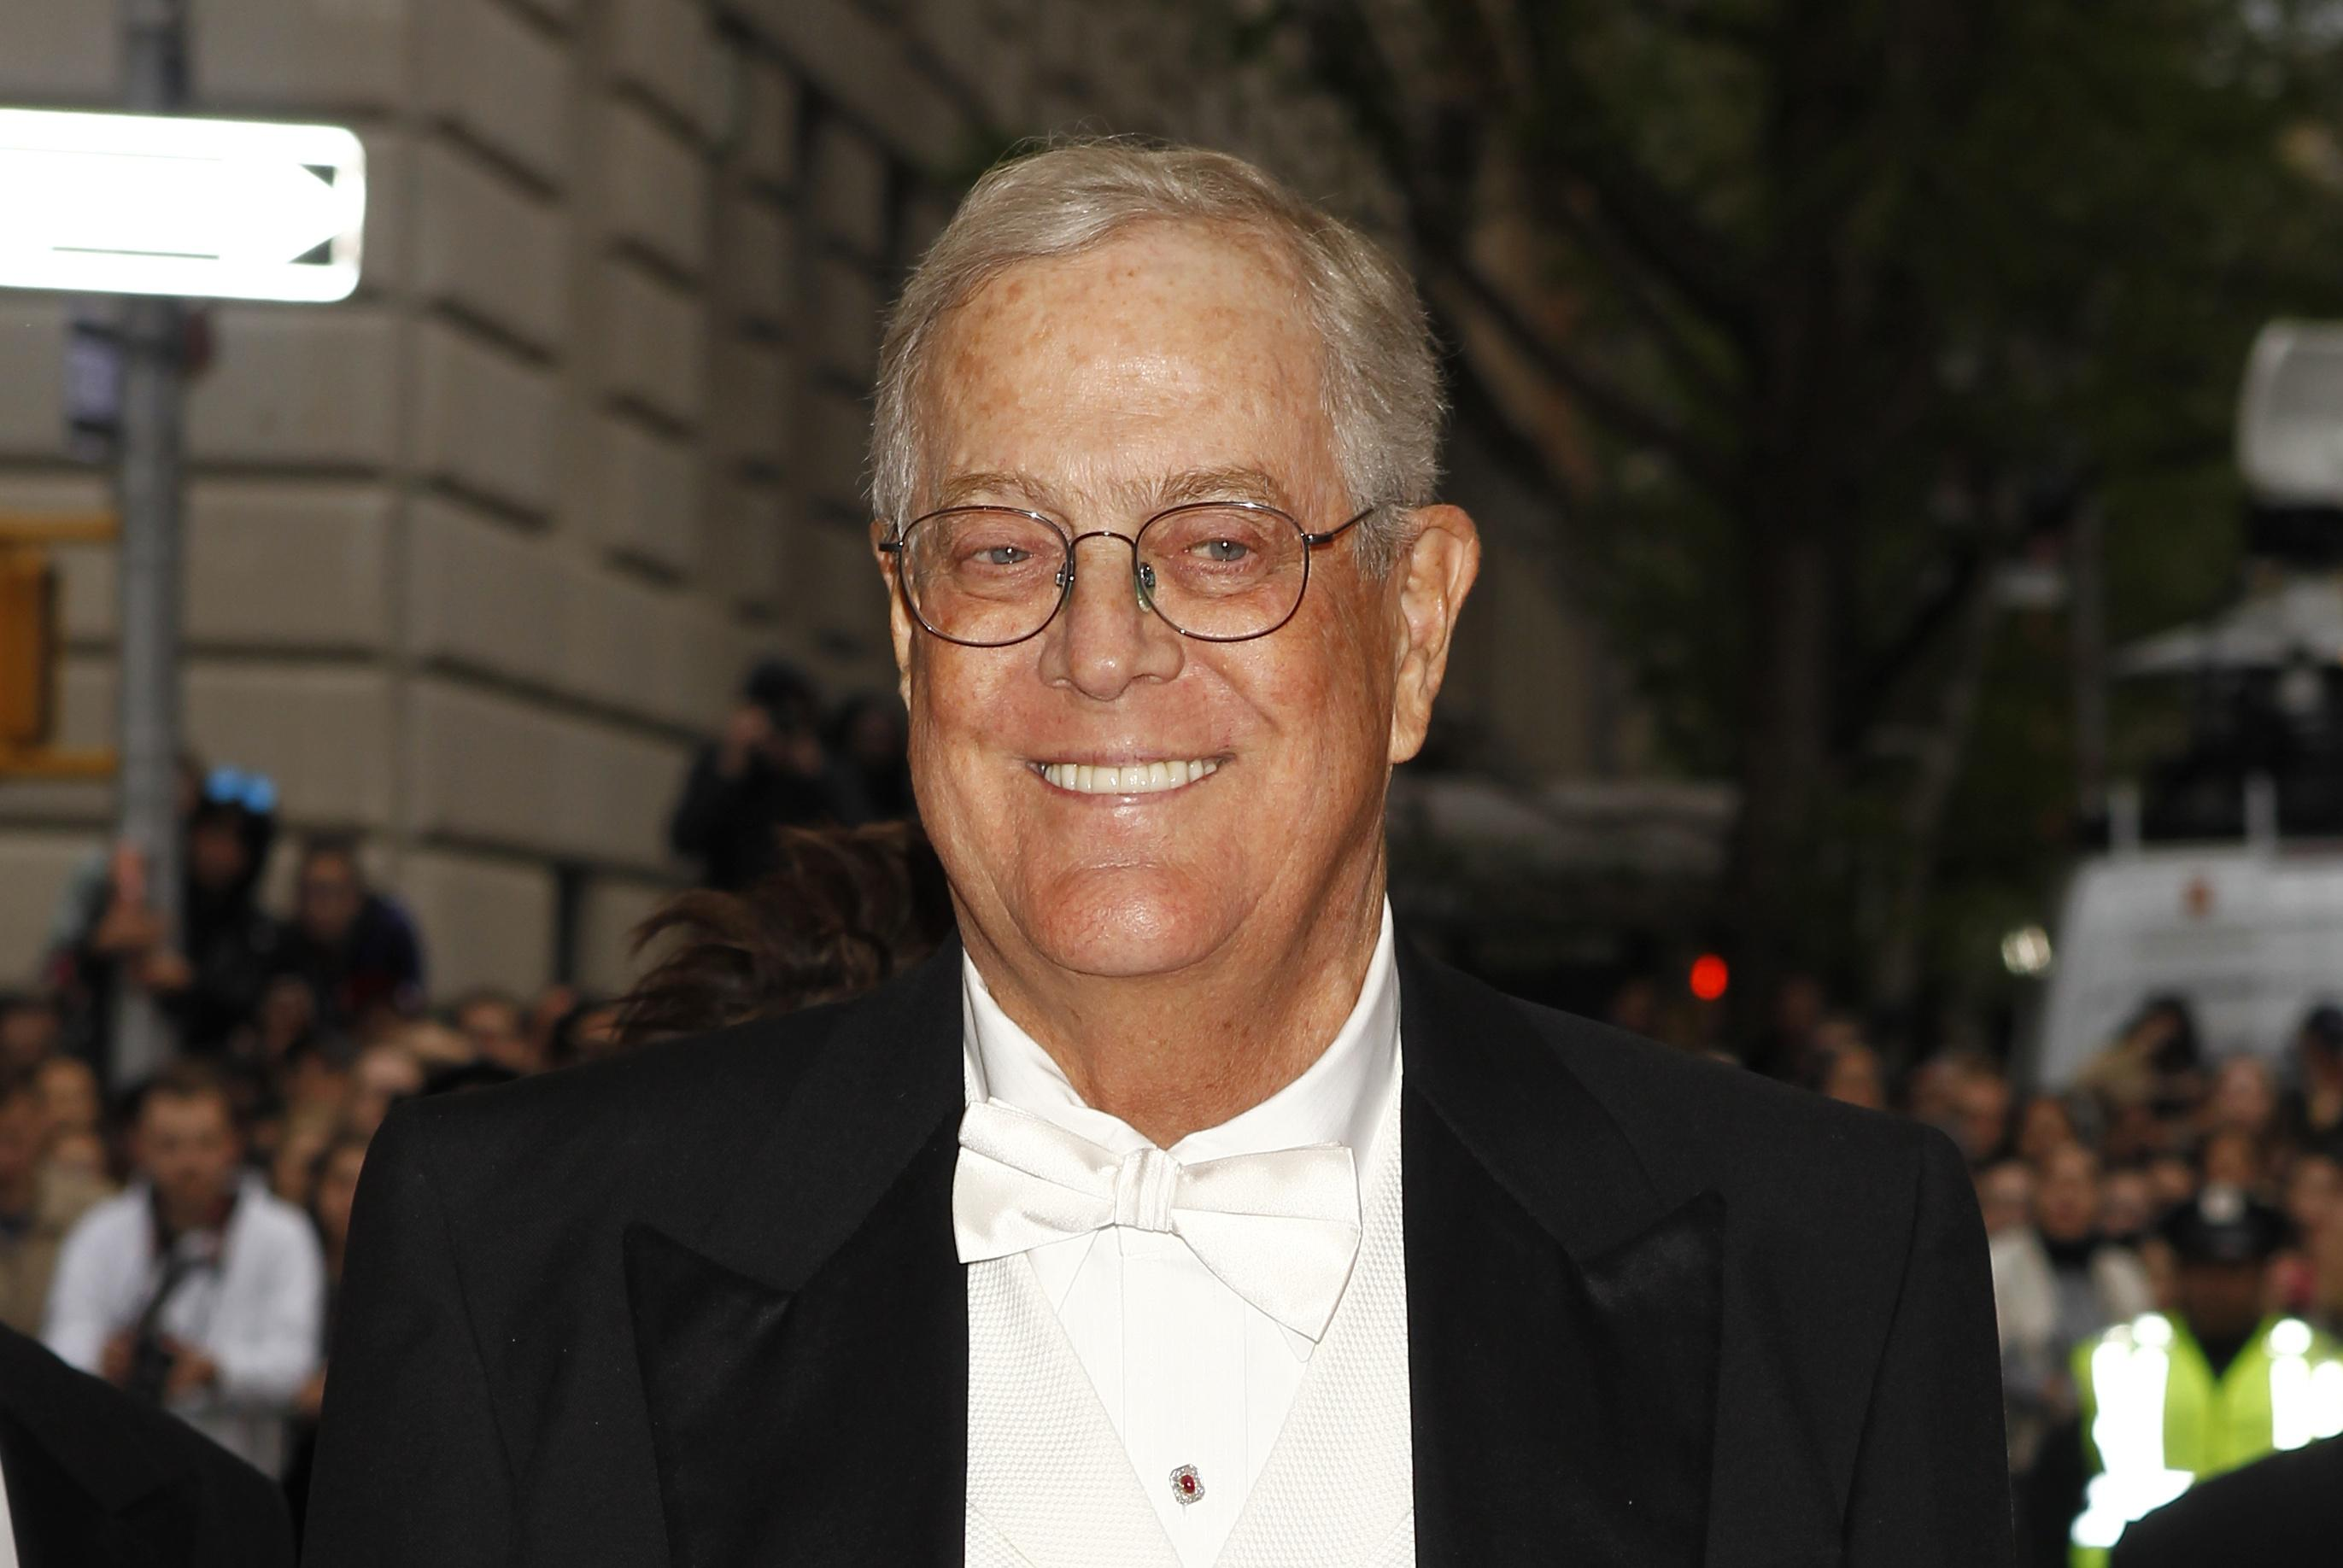 Billionaire David Koch to retire from Koch Industries